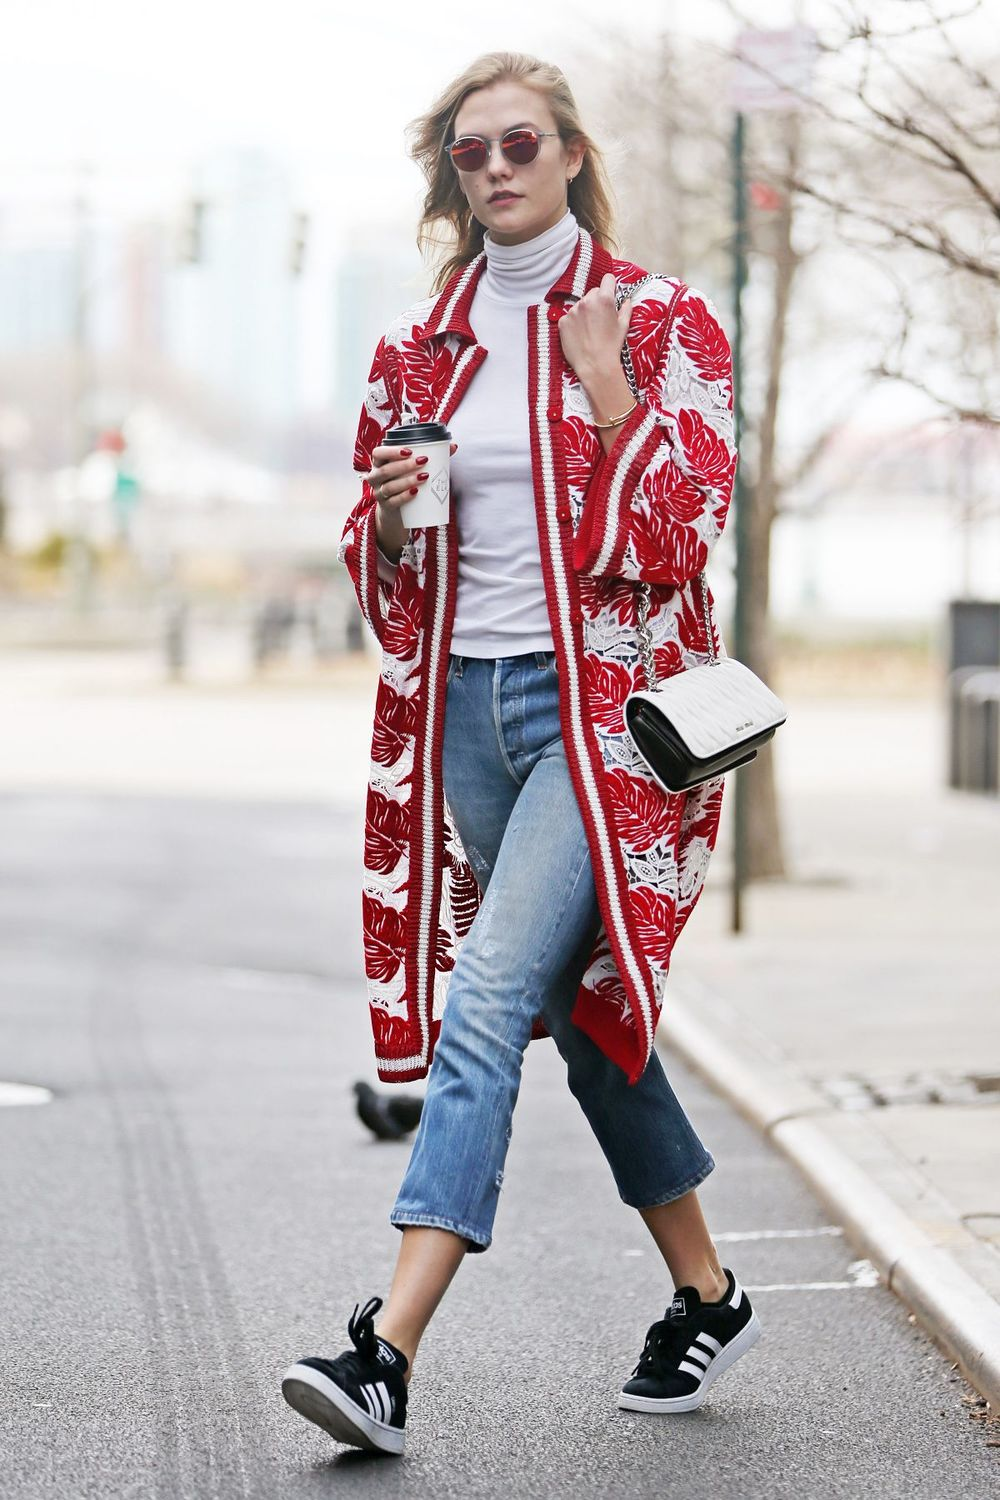 Um, hi Karlie Kloss!  The model returned to our recap wearing Adidas Campus Sneakers and a colorful cardigan from the Ermanno Scervino Spring 2016 collection.